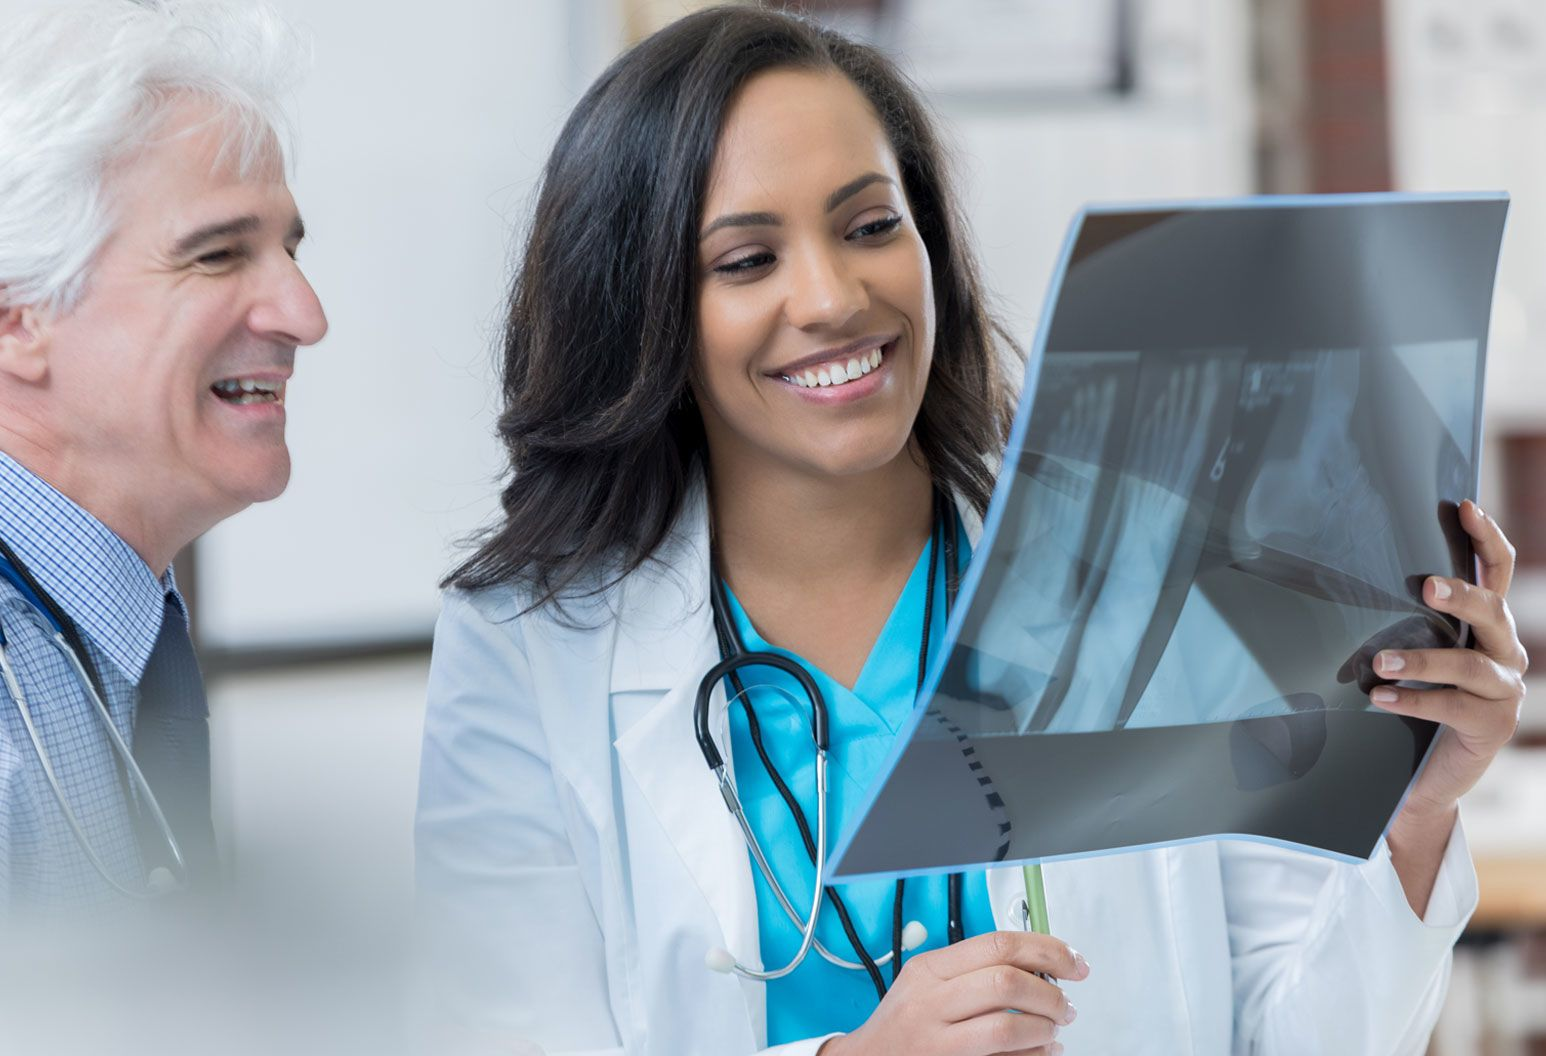 Two physicians looking an x-ray together